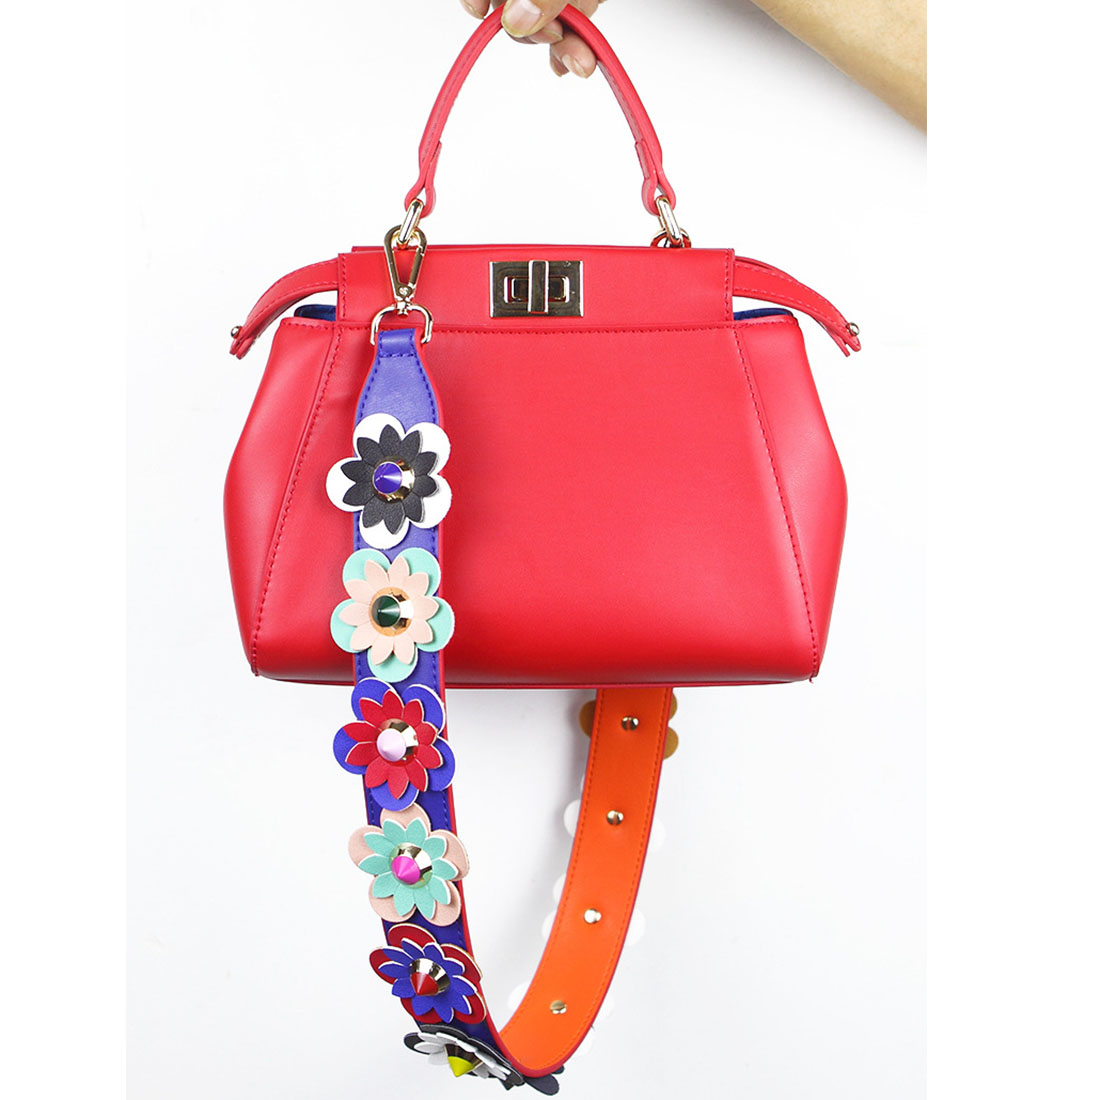 Compare Prices on Flower Bag Handles- Online Shopping/Buy Low ...